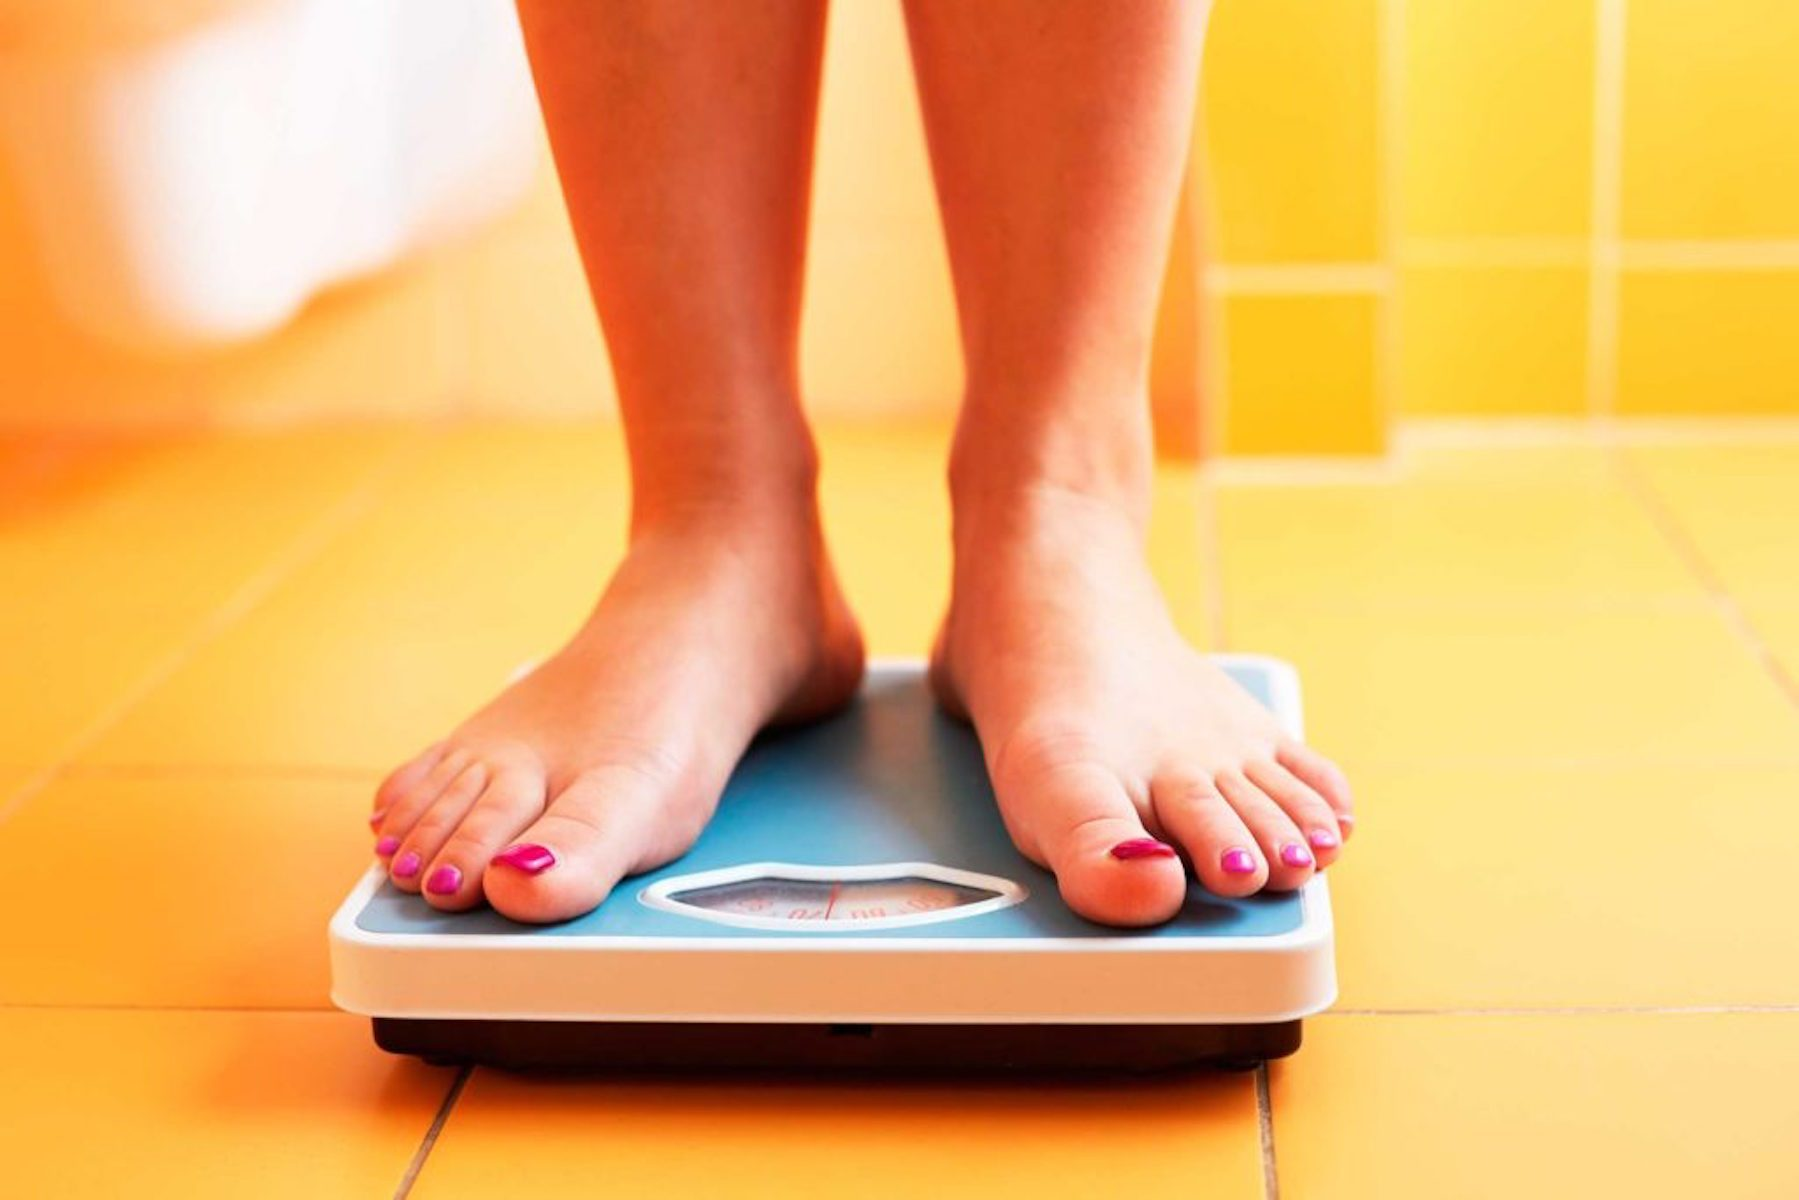 person standing on a scale, person weighing themselves